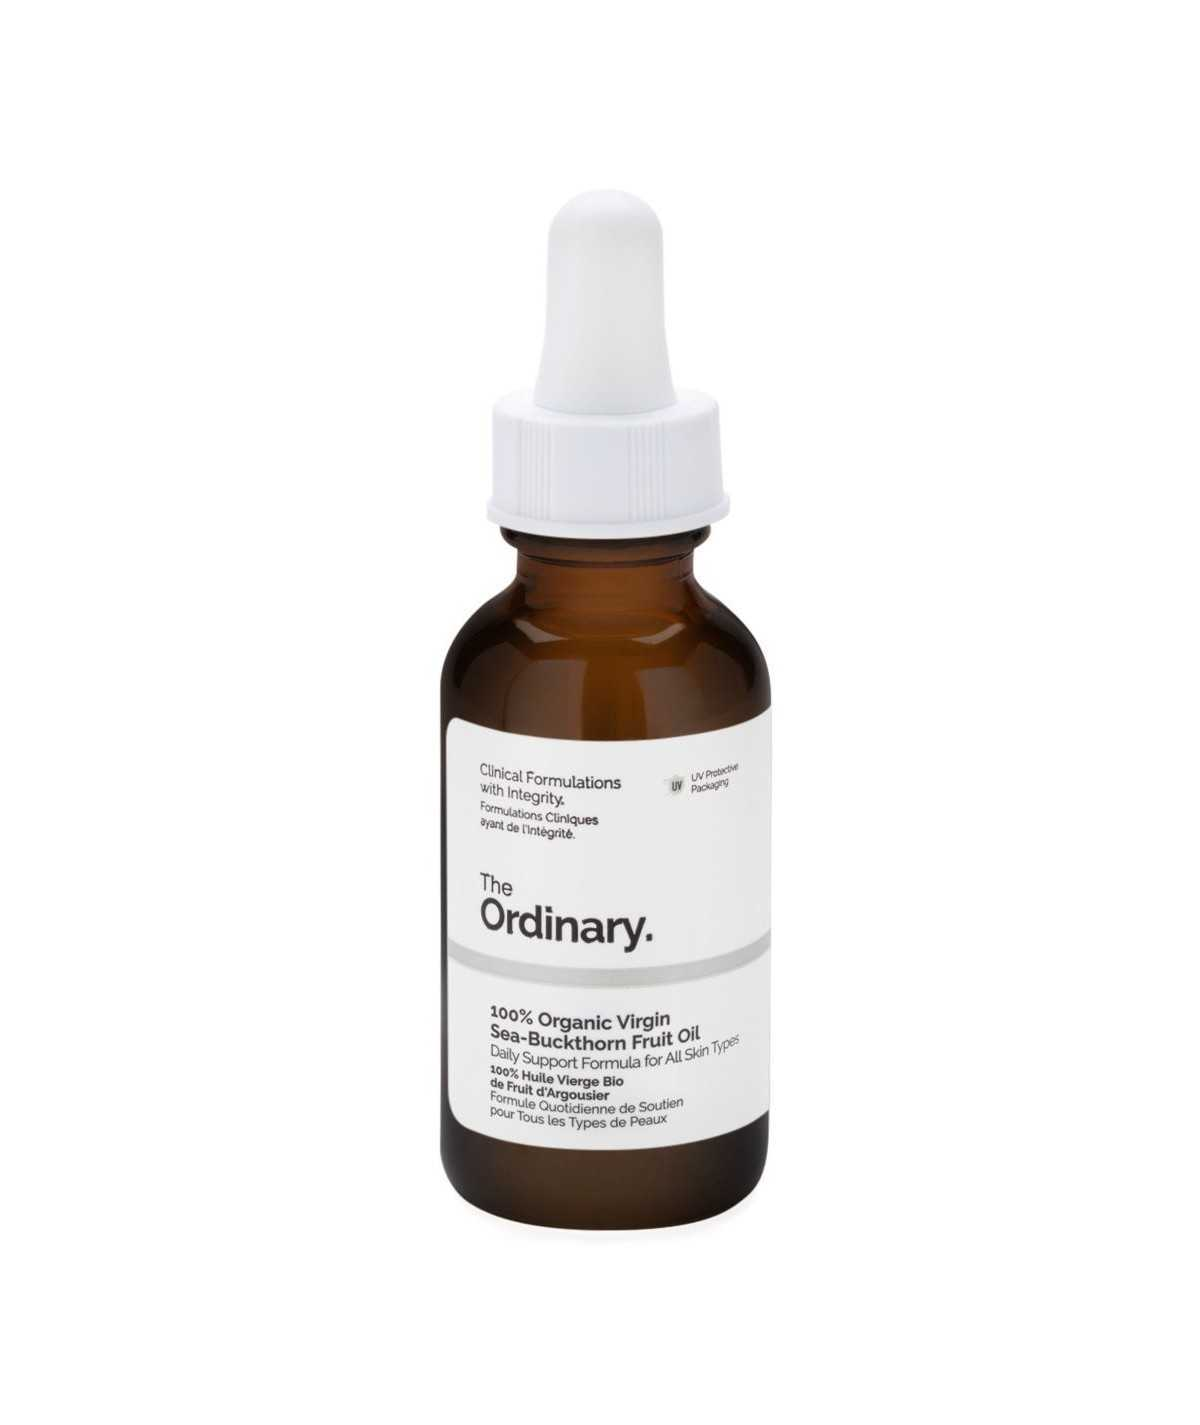 THE ORDINARY. 100% Organic Virgin Sea-Buckthorn Fruit Oil